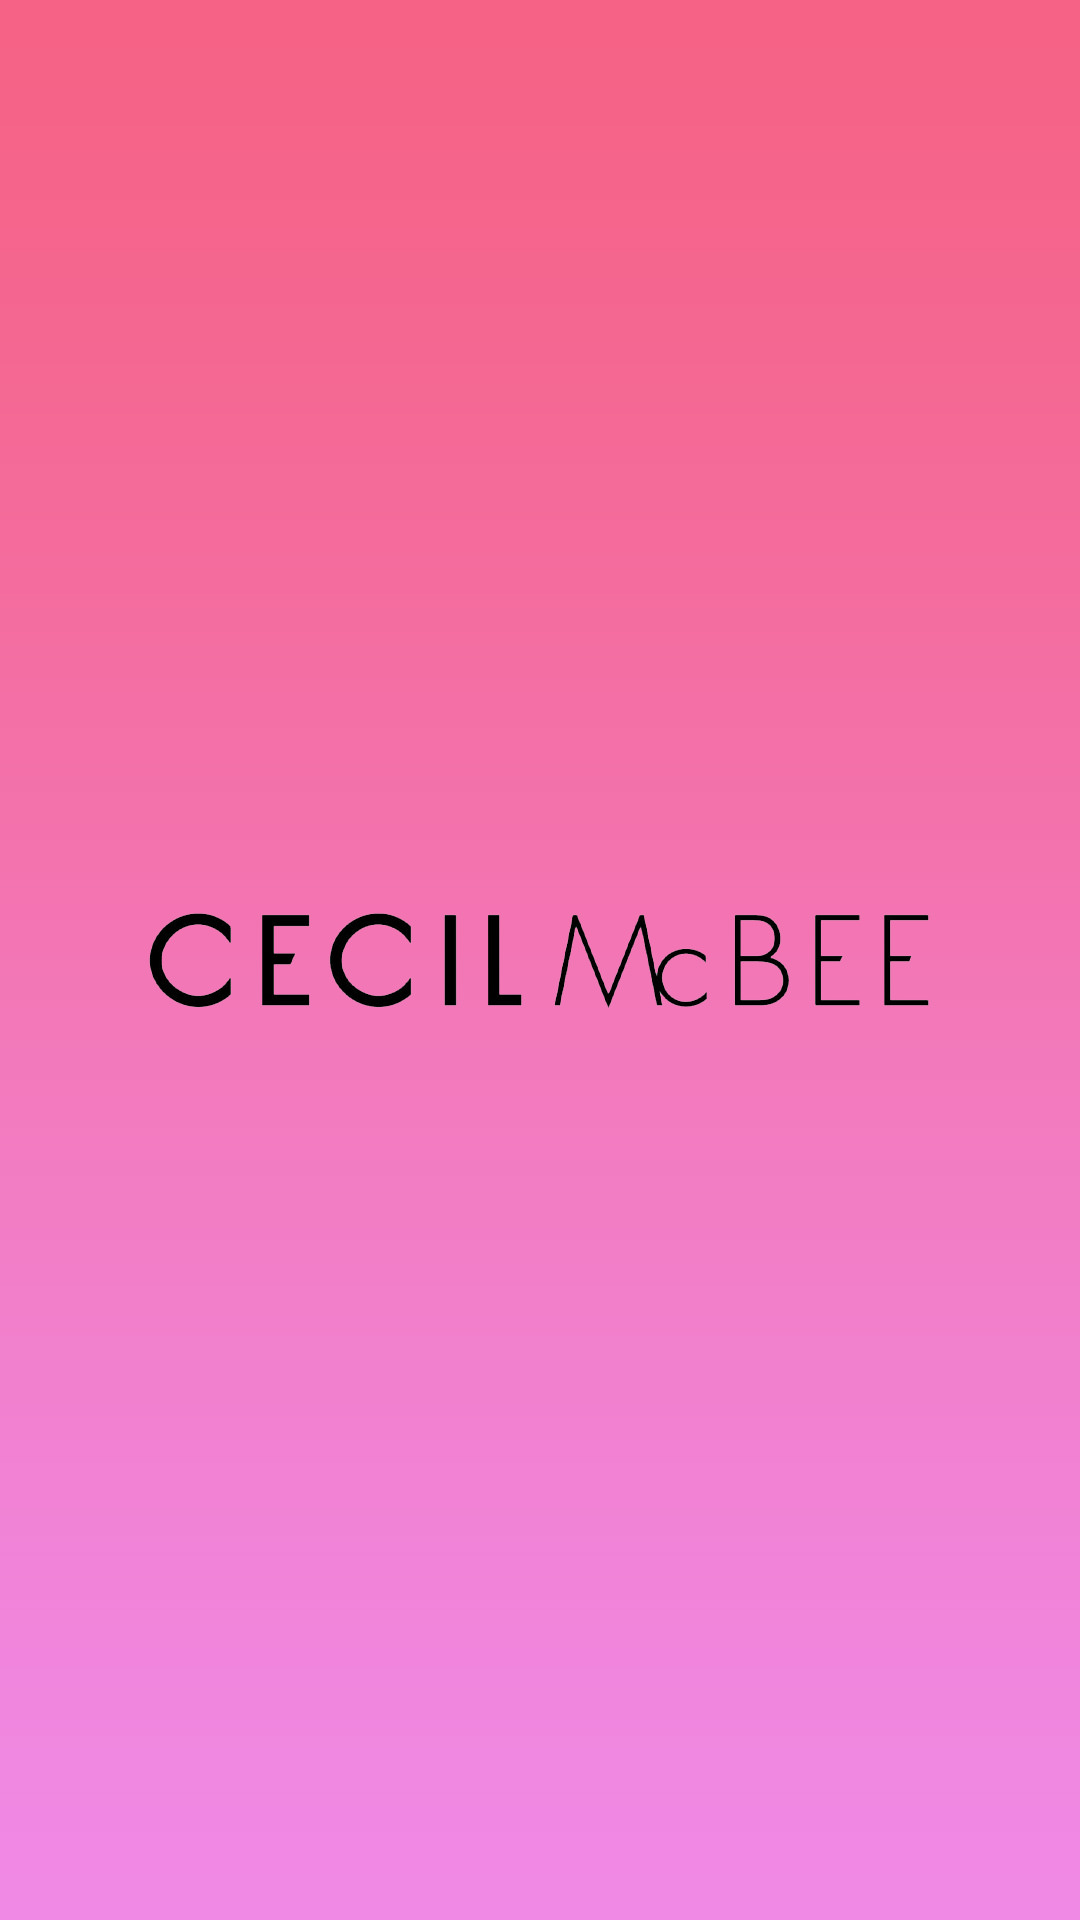 cecil00004 - セシルマクビー[CECIL McBEE]の高画質スマホ壁紙23枚 [iPhone&Androidに対応]